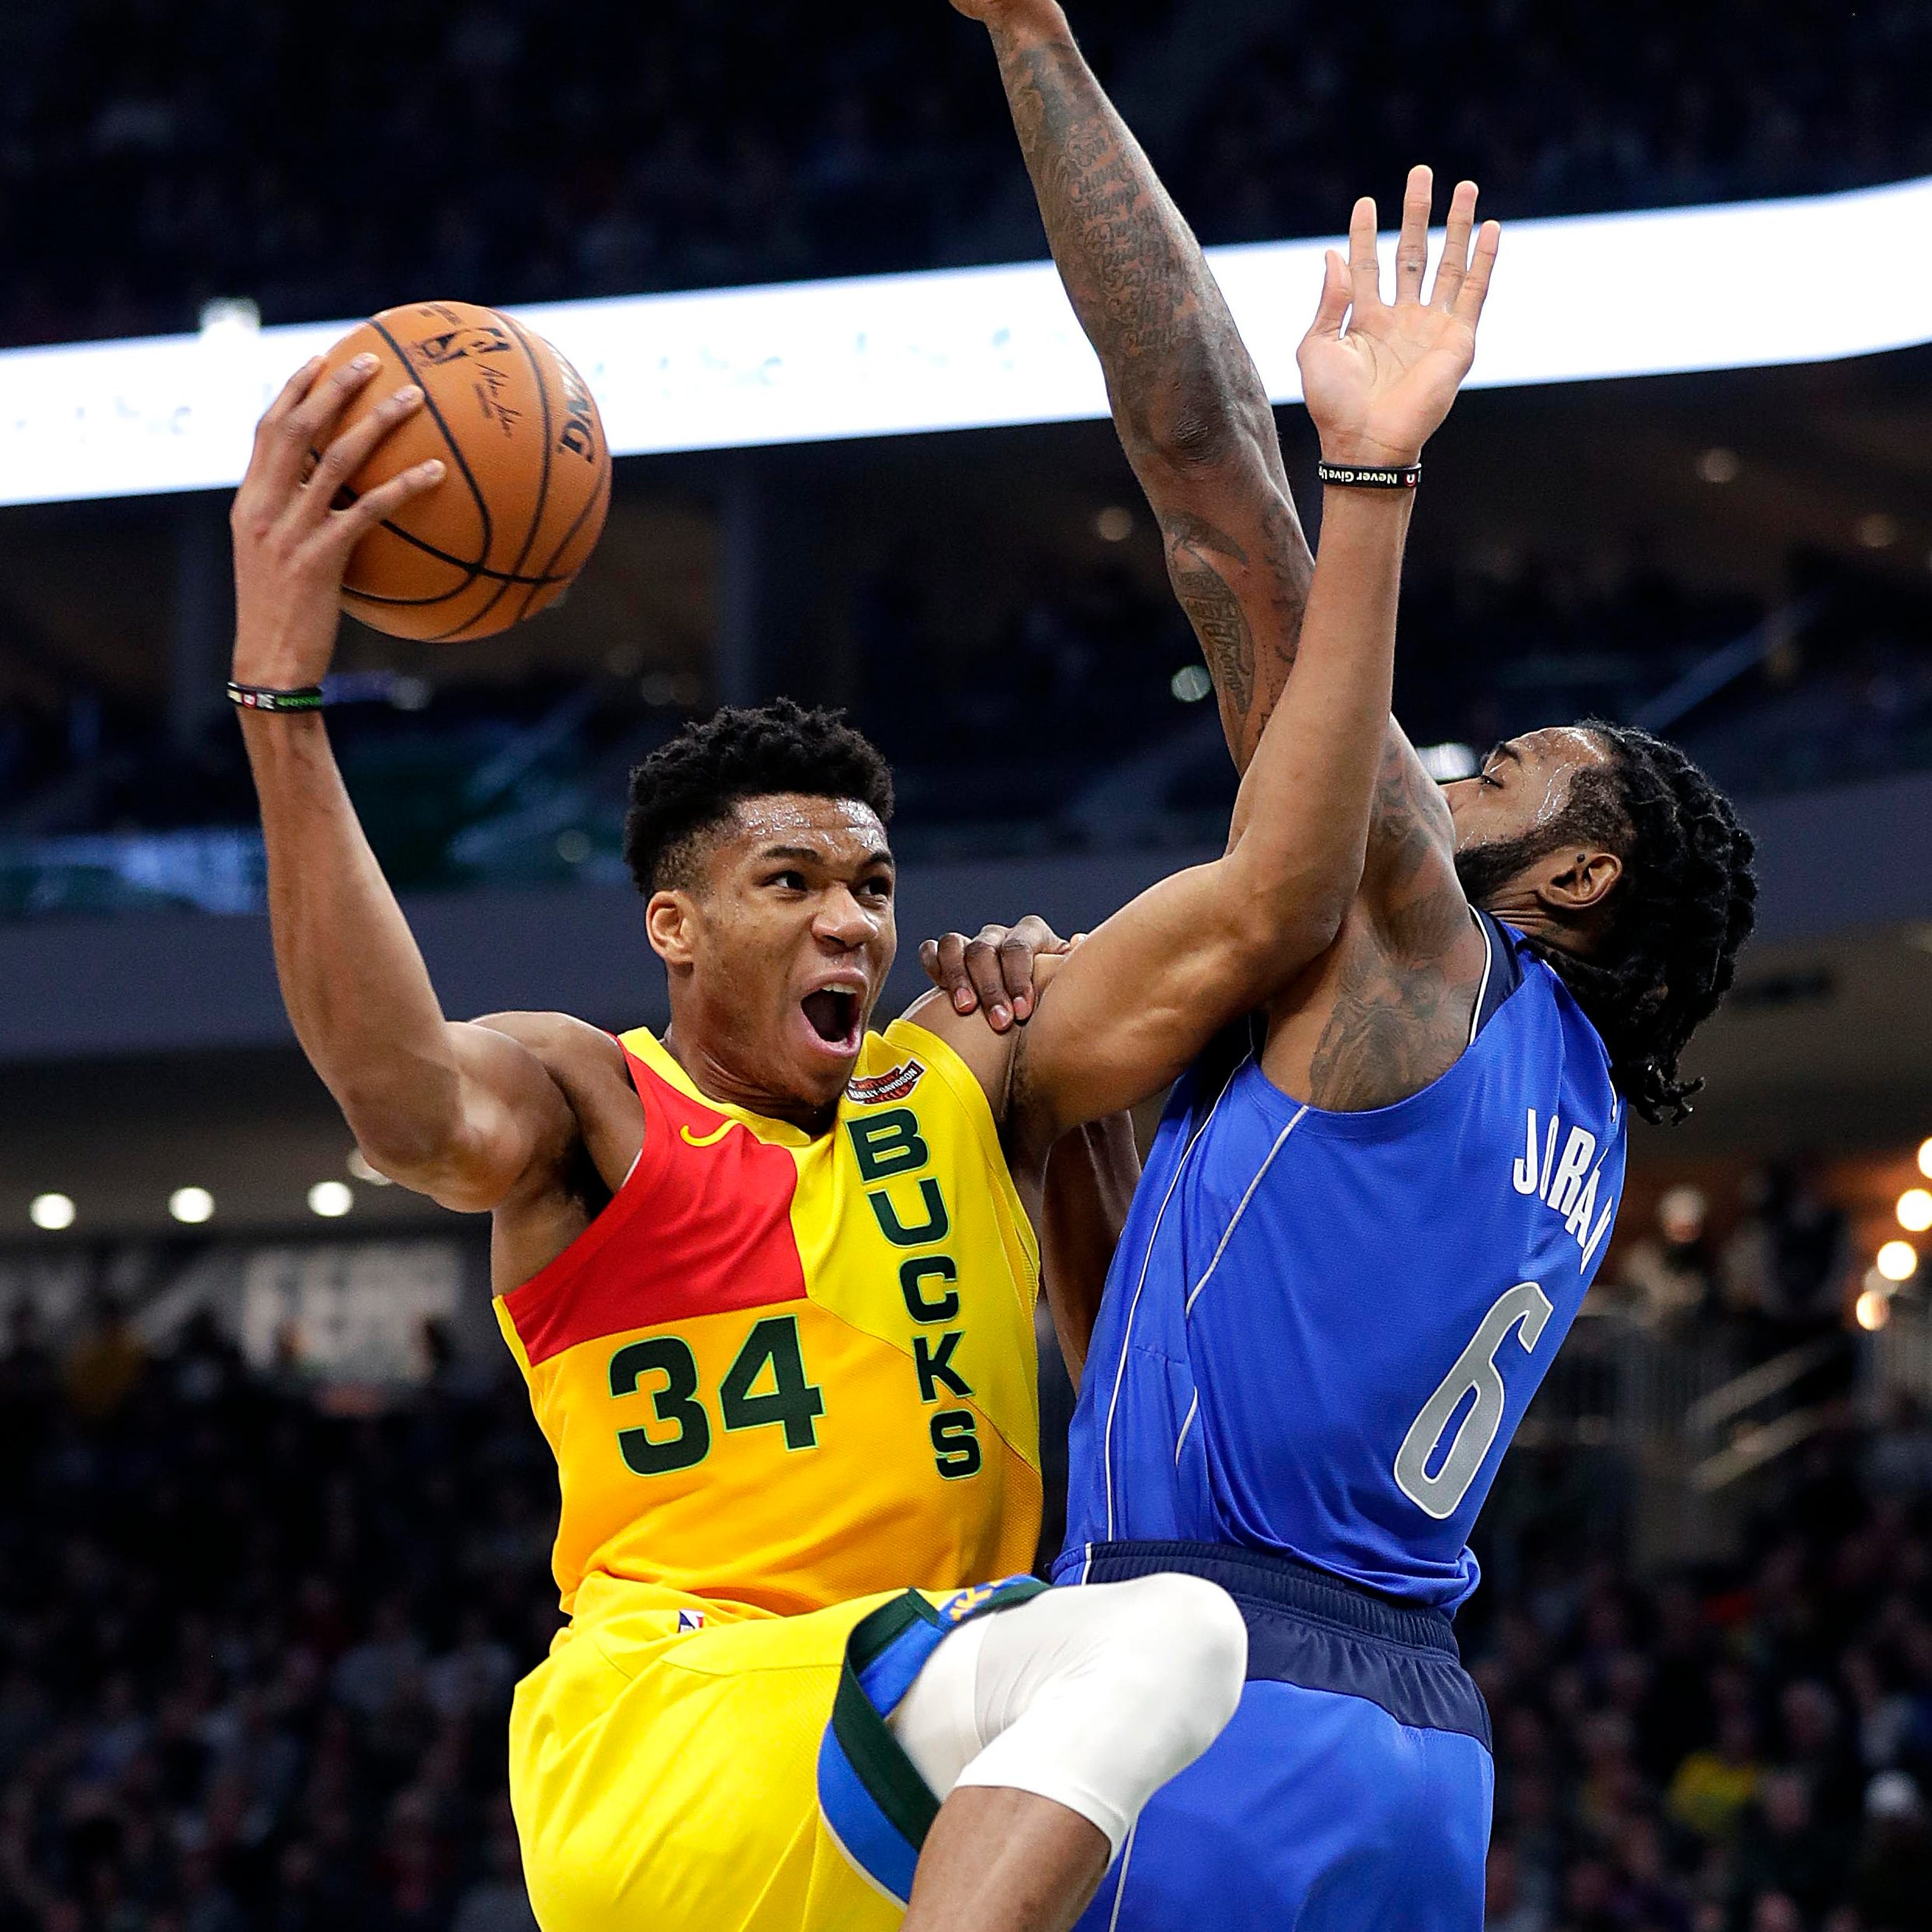 Bucks 116, Mavericks 106: Giannis has 31 points and plenty of help